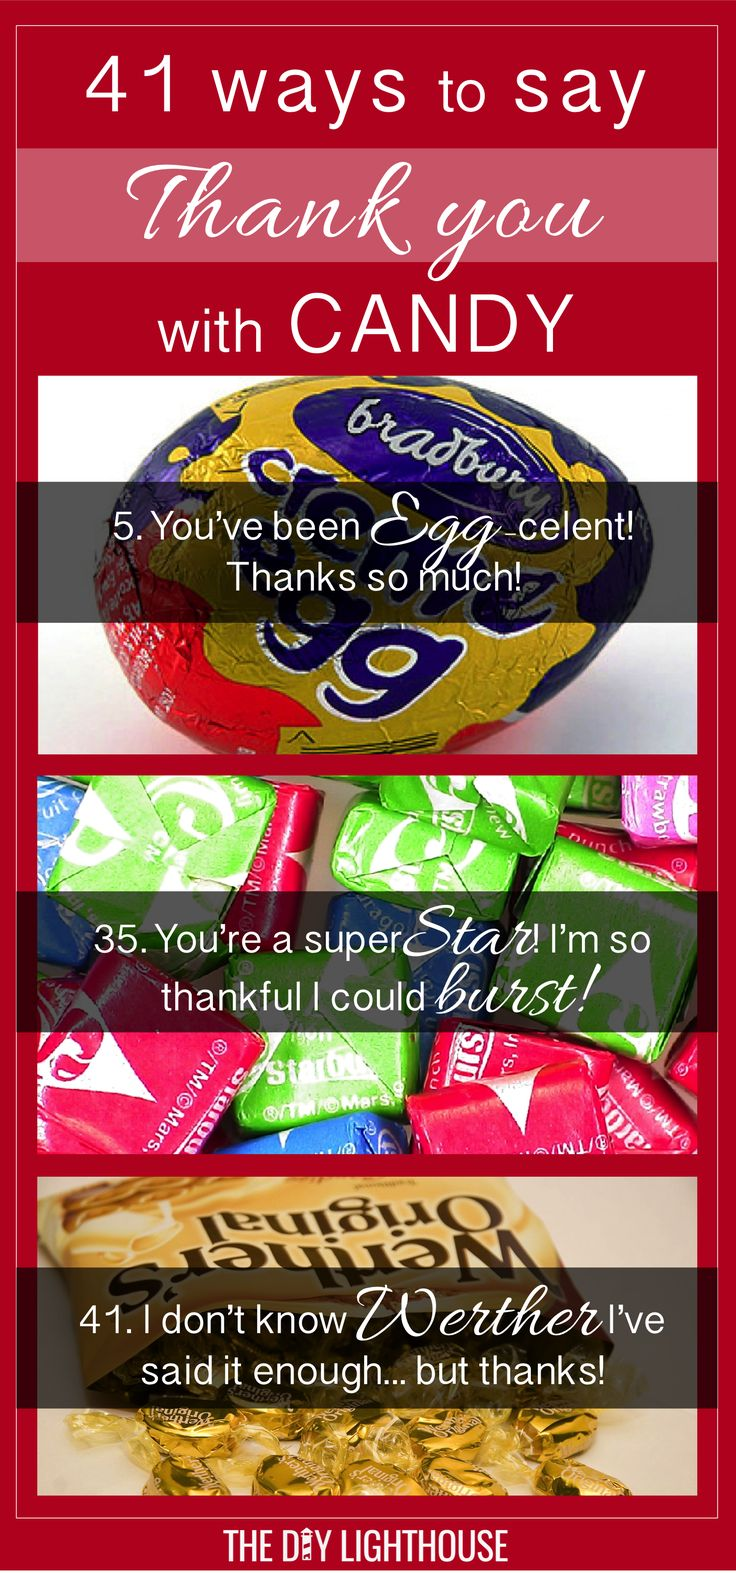 41 ways to say THANK YOU with candy and candy bars. Cute and clever ideas!